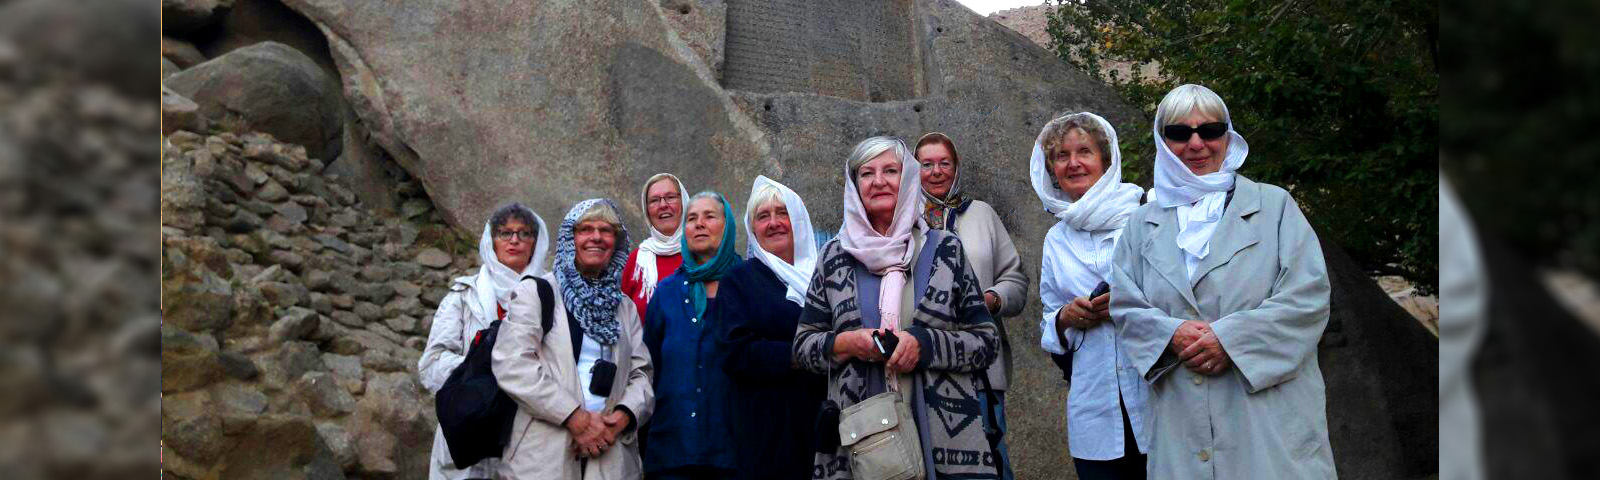 Iran Women Tour